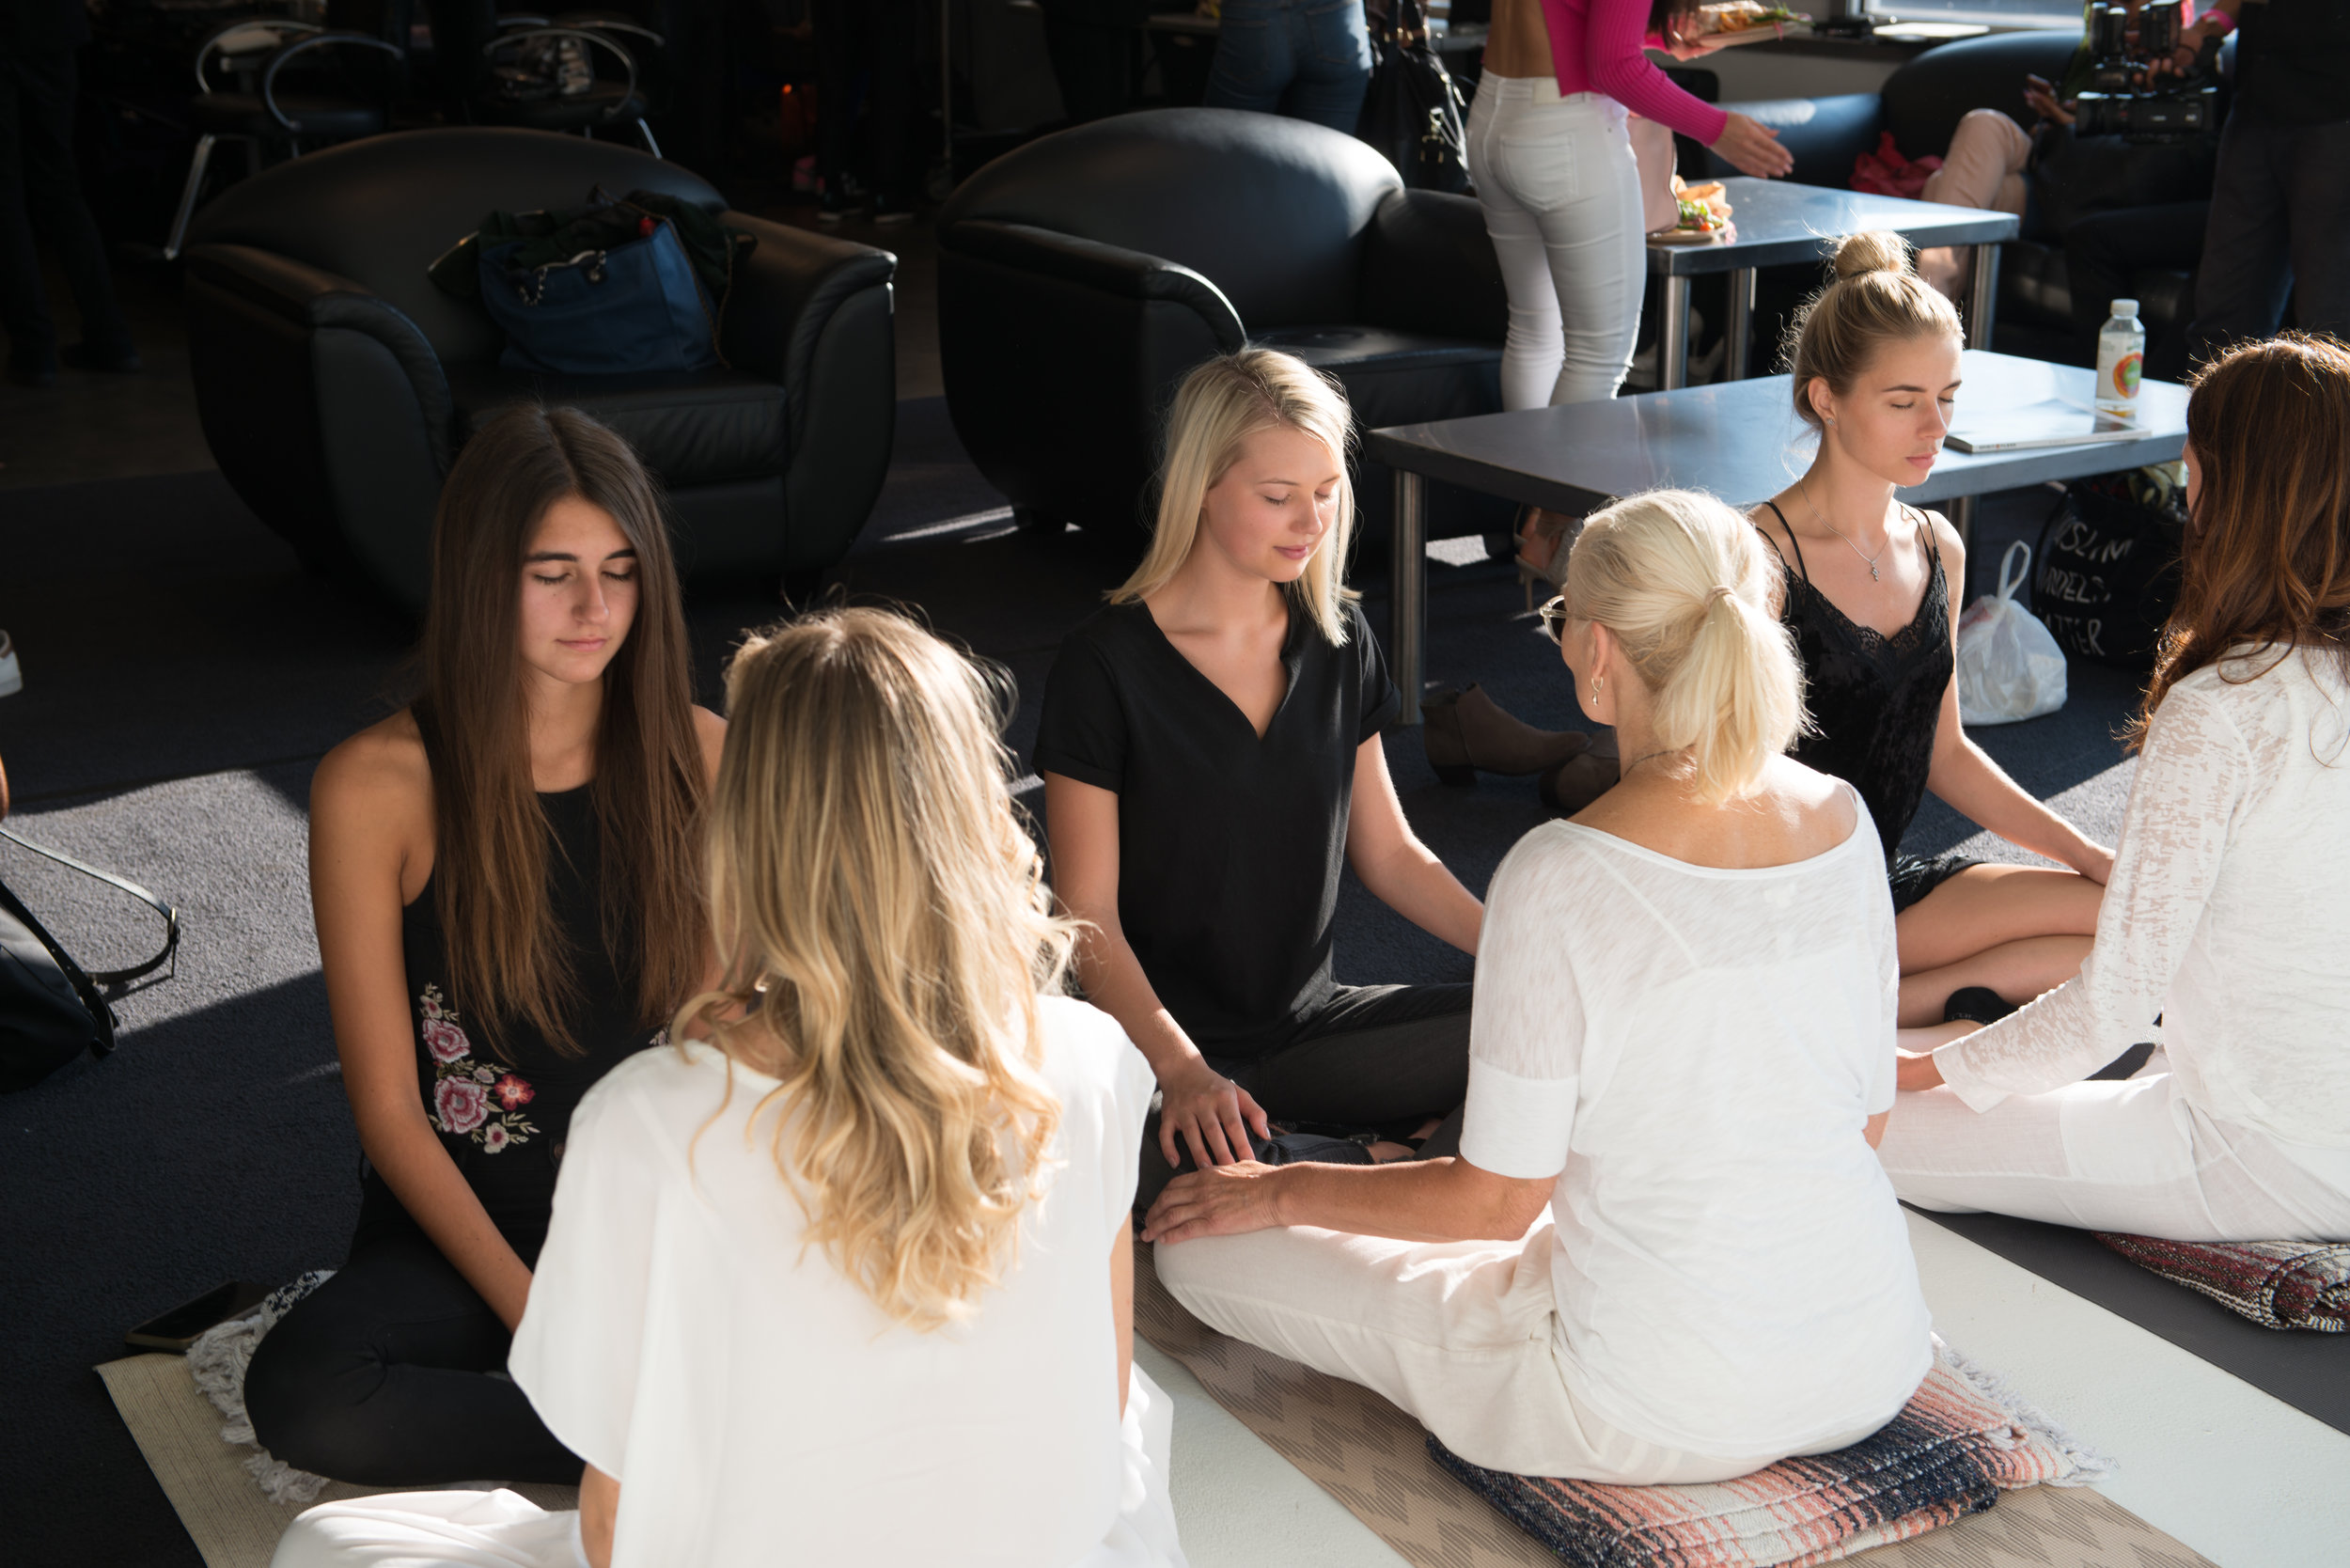 Meditation NYFW - SupeRoleModels practiced backstage meditation with models during the NYFW September 2017